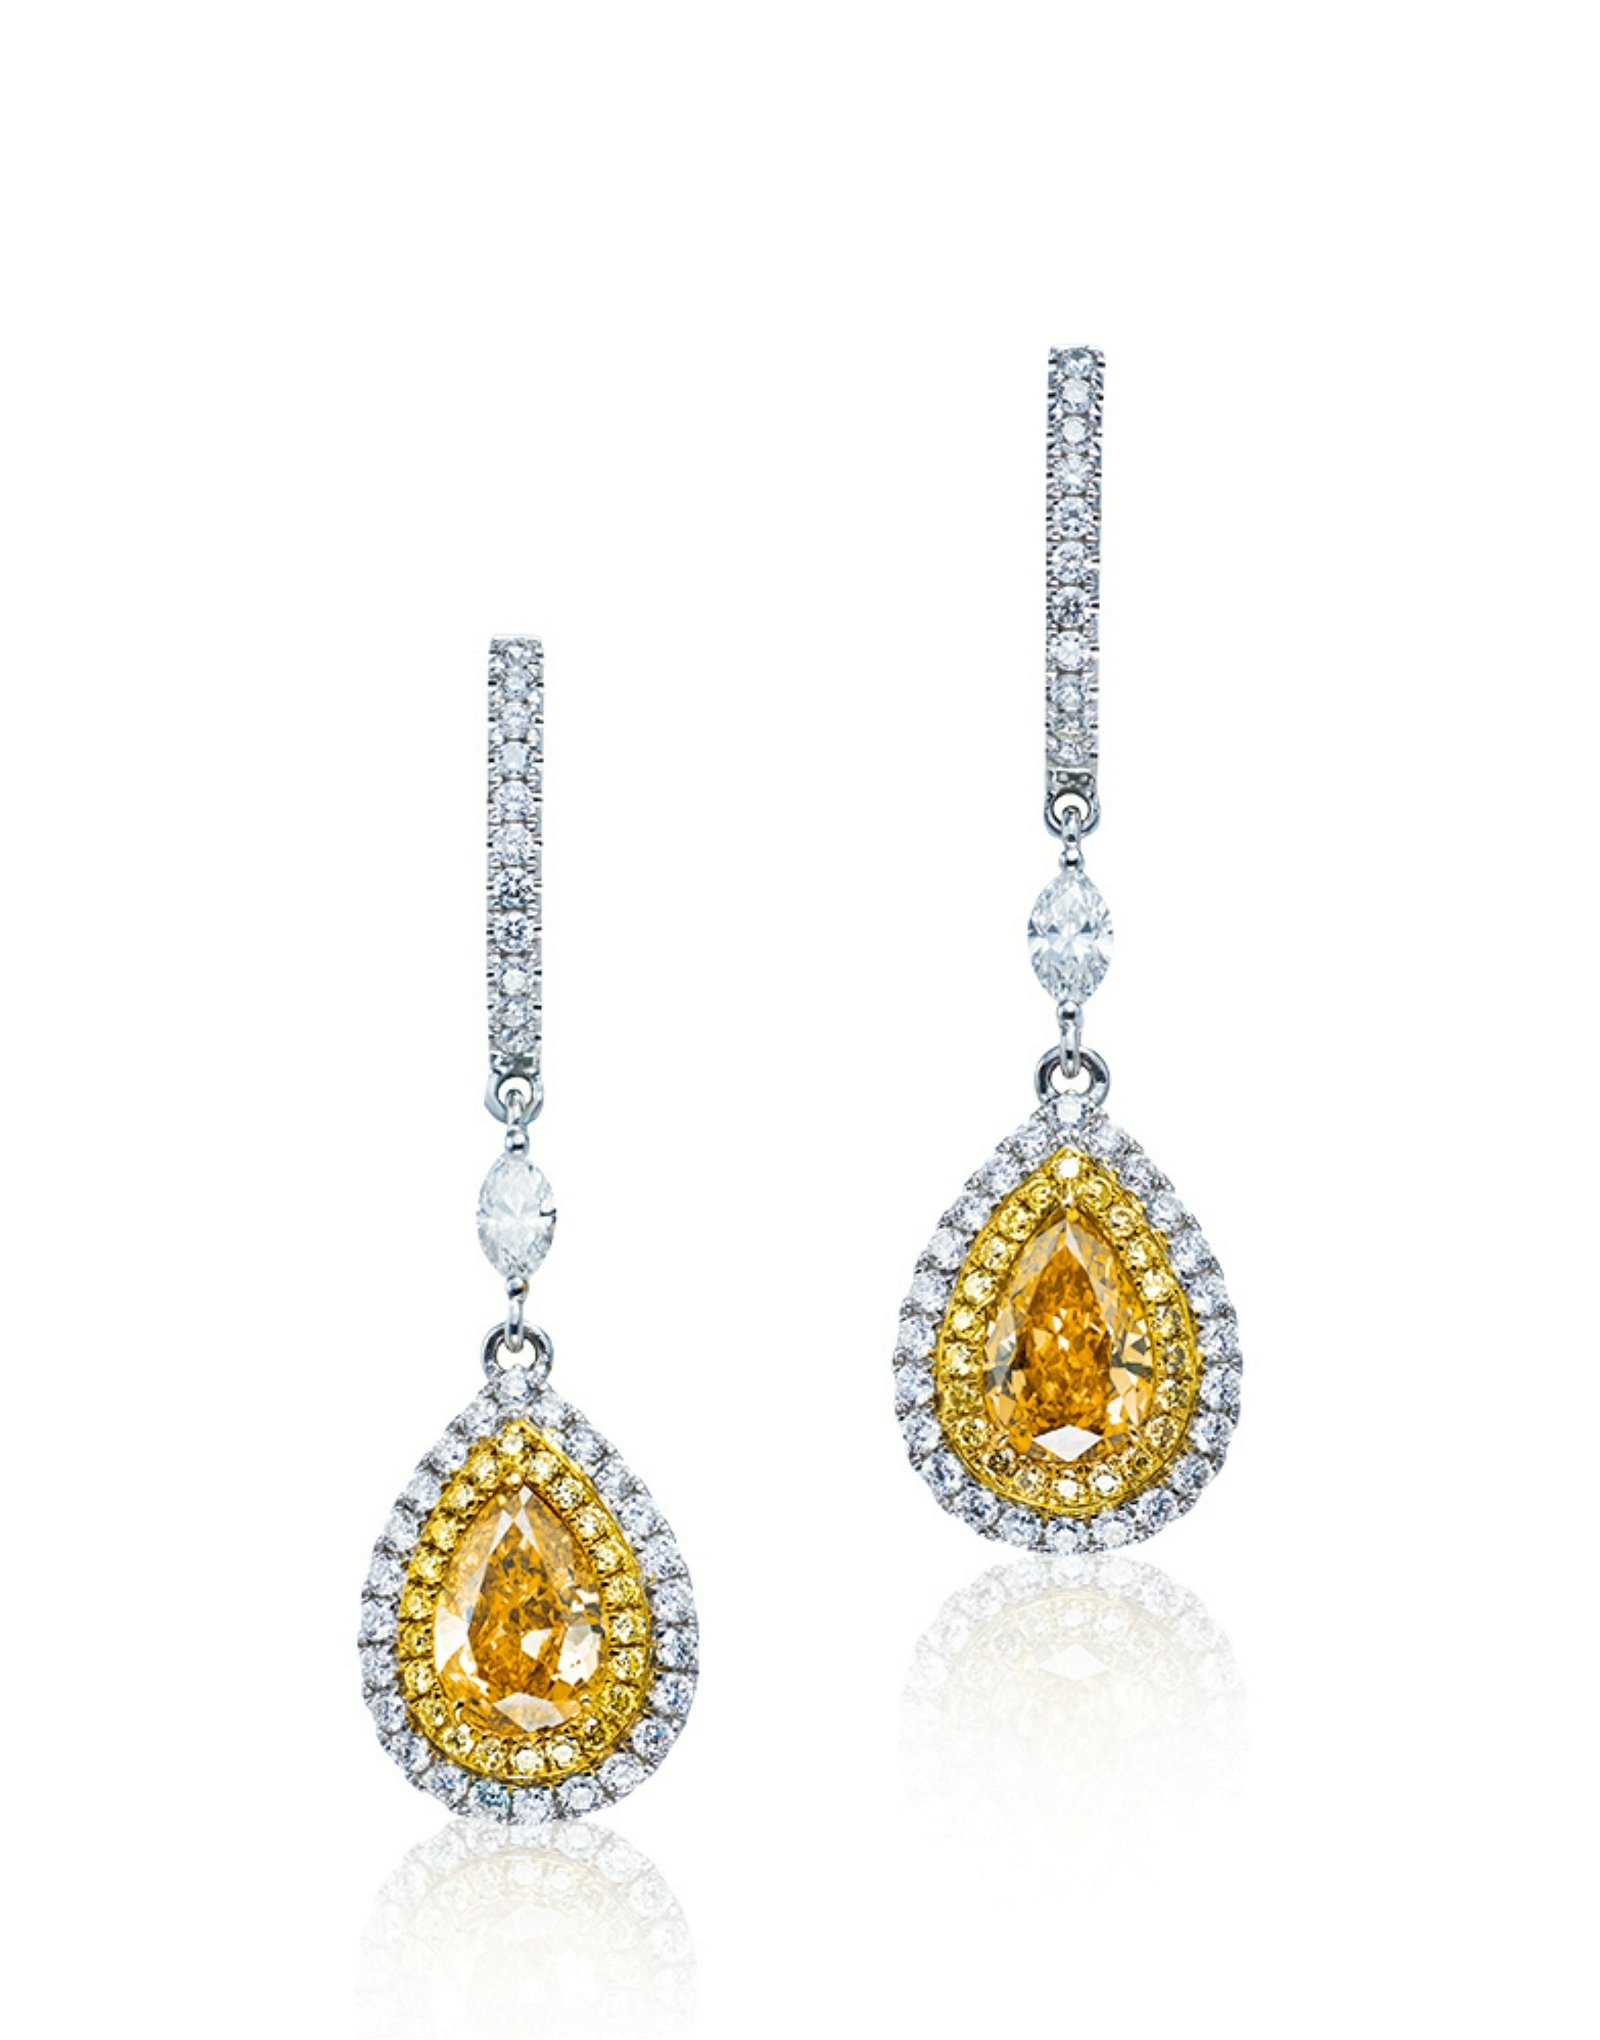 A Pair of 1.08 and 1.00 Carat Fancy Vivid Orangy Yellow